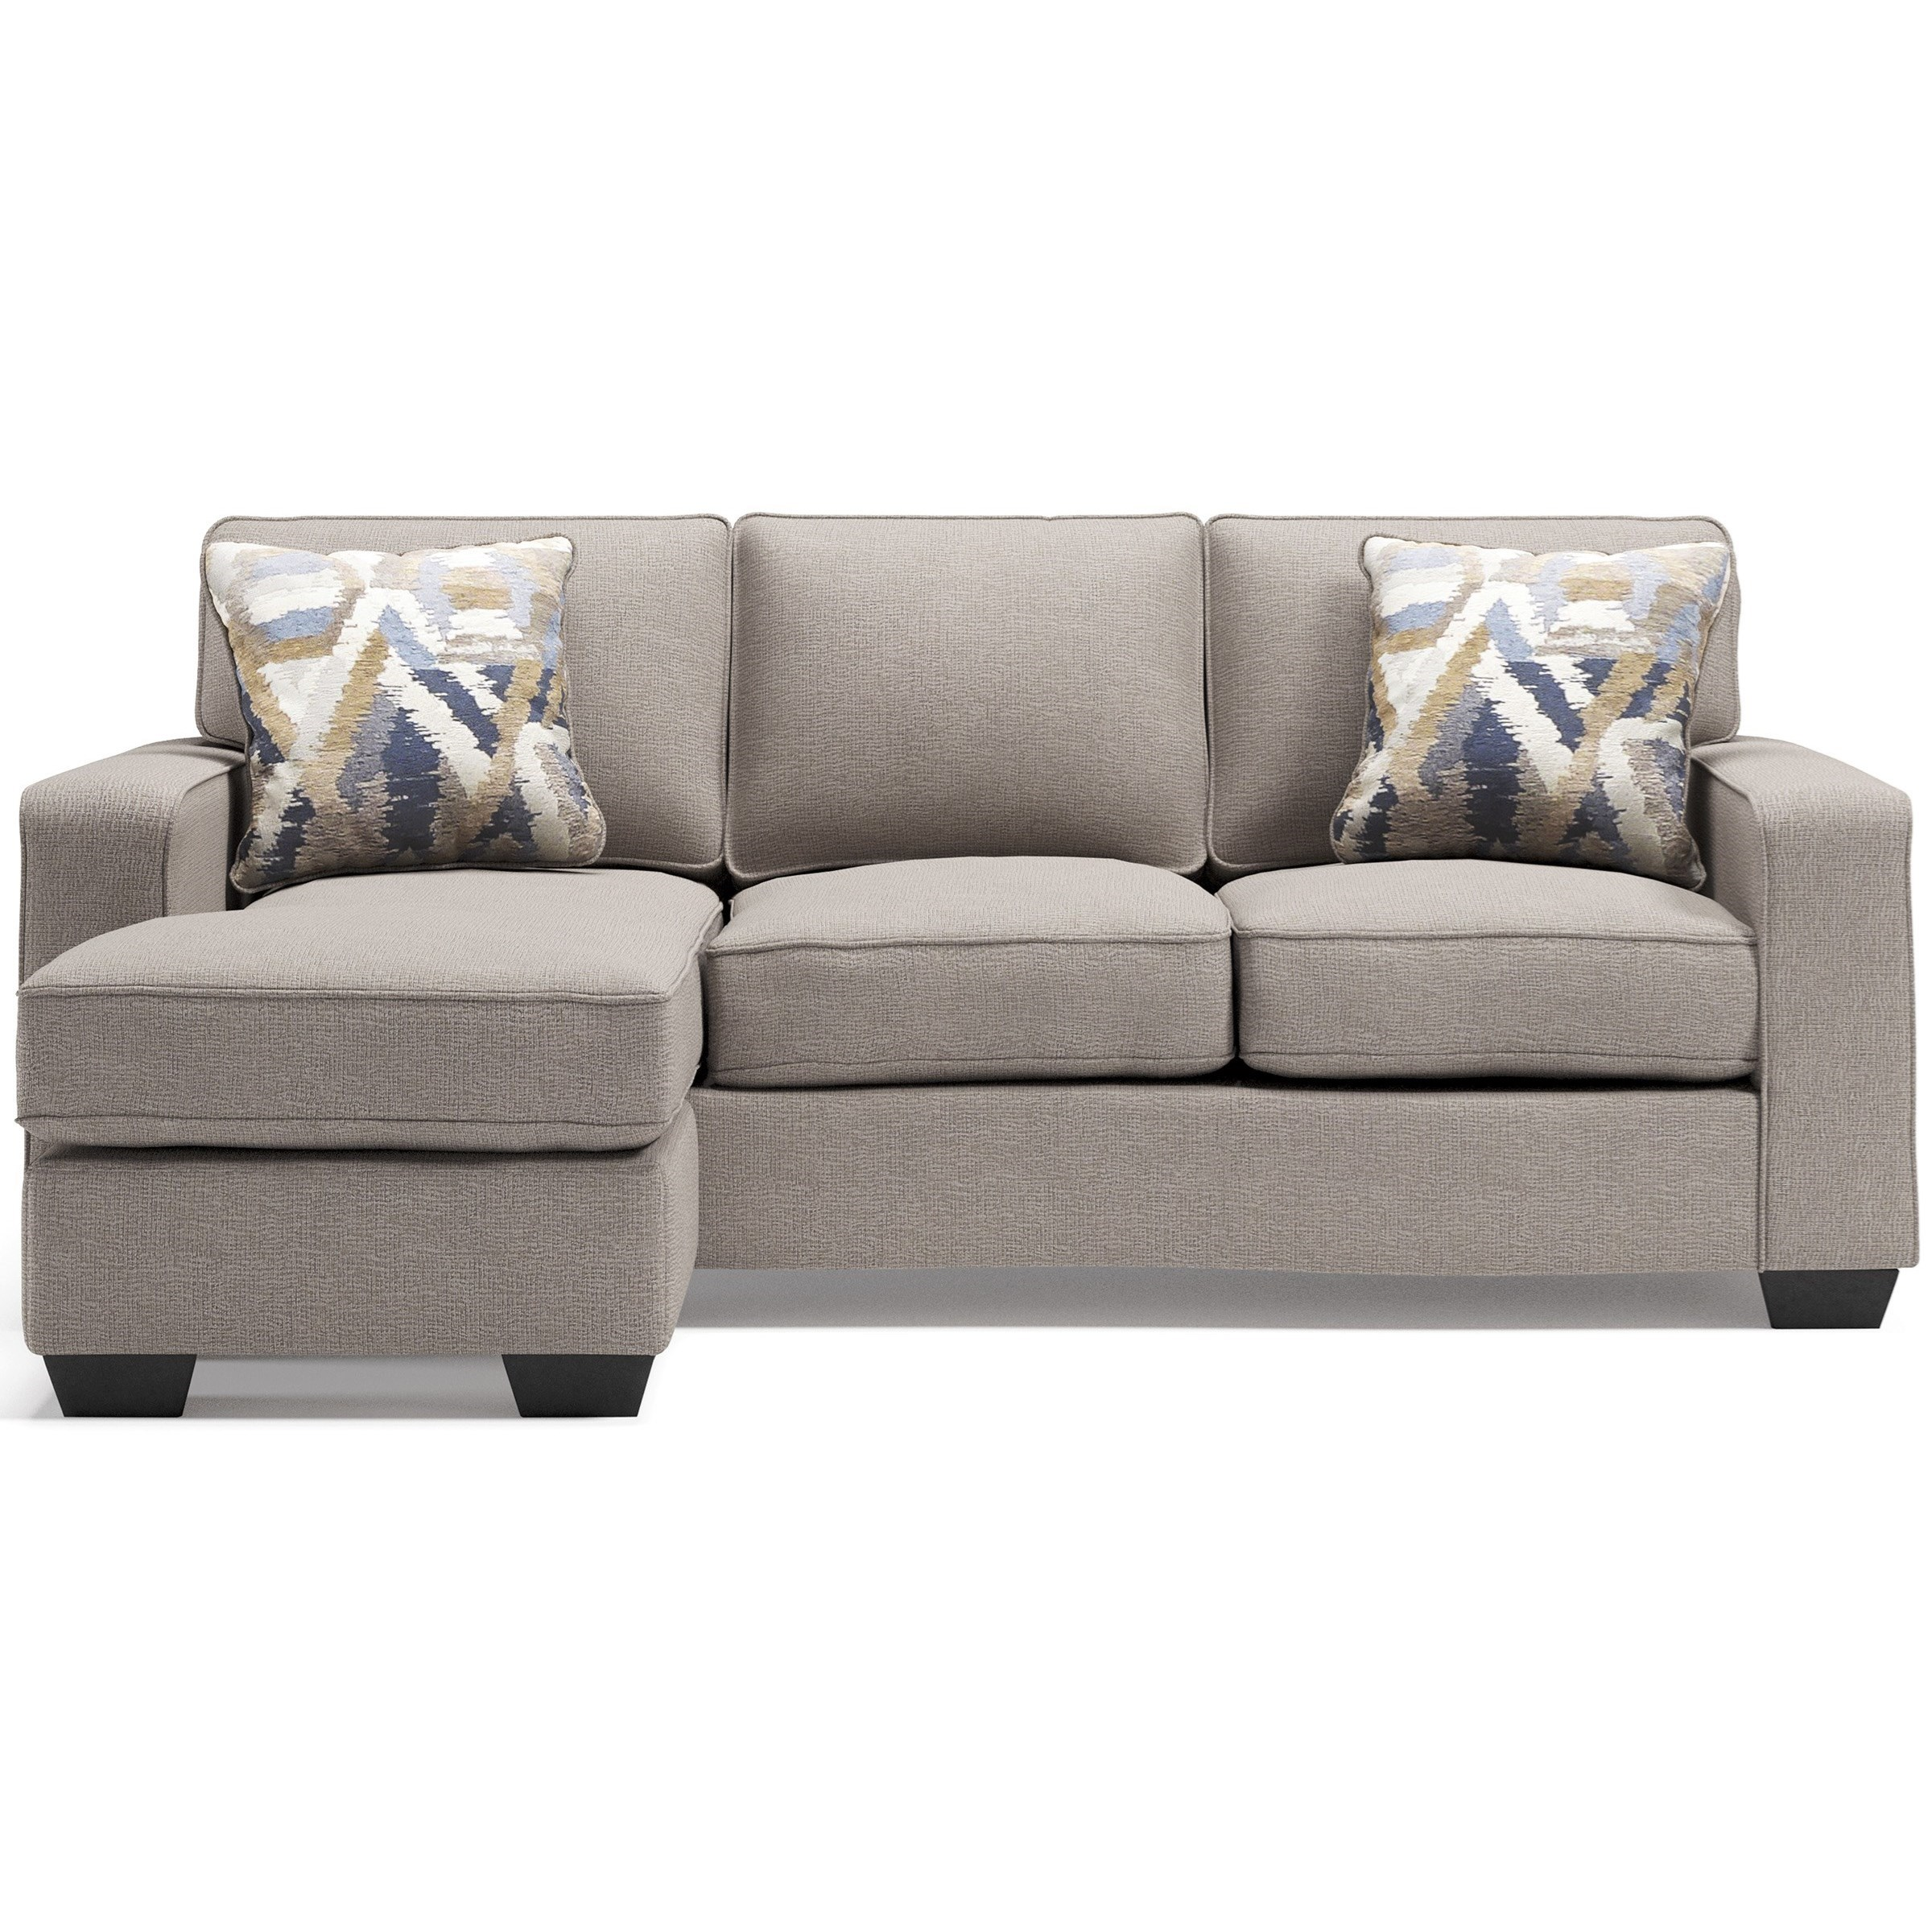 Greaves Sofa Chaise by Signature at Walker's Furniture